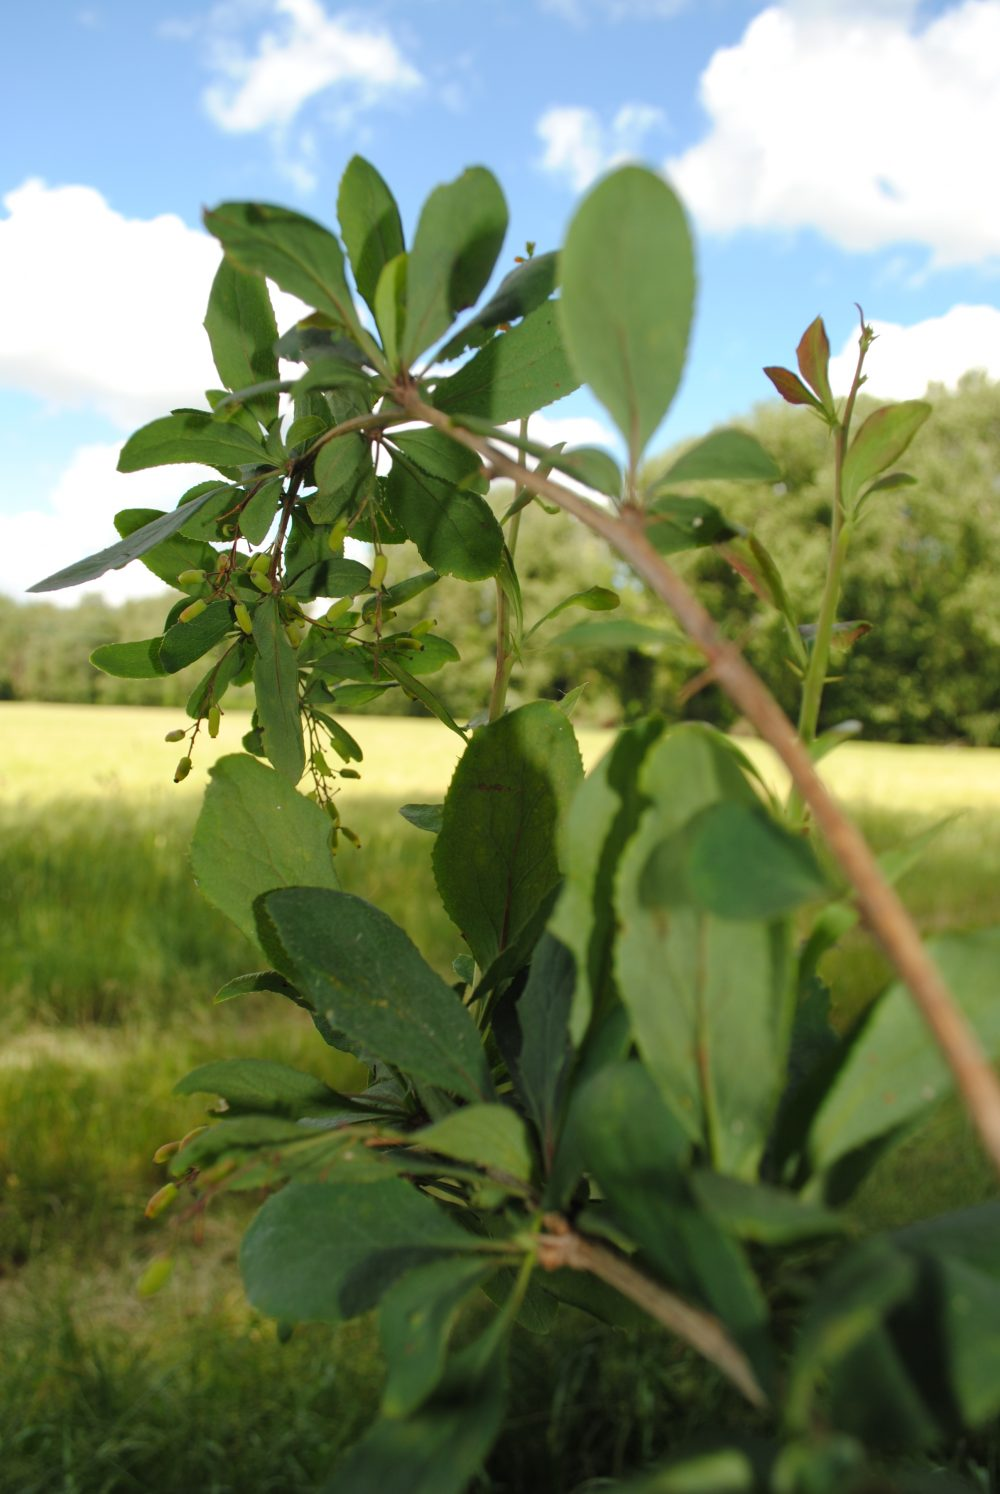 Barberry bush in close proximity to barley field - Credit Clare Lewis John Innes Centre